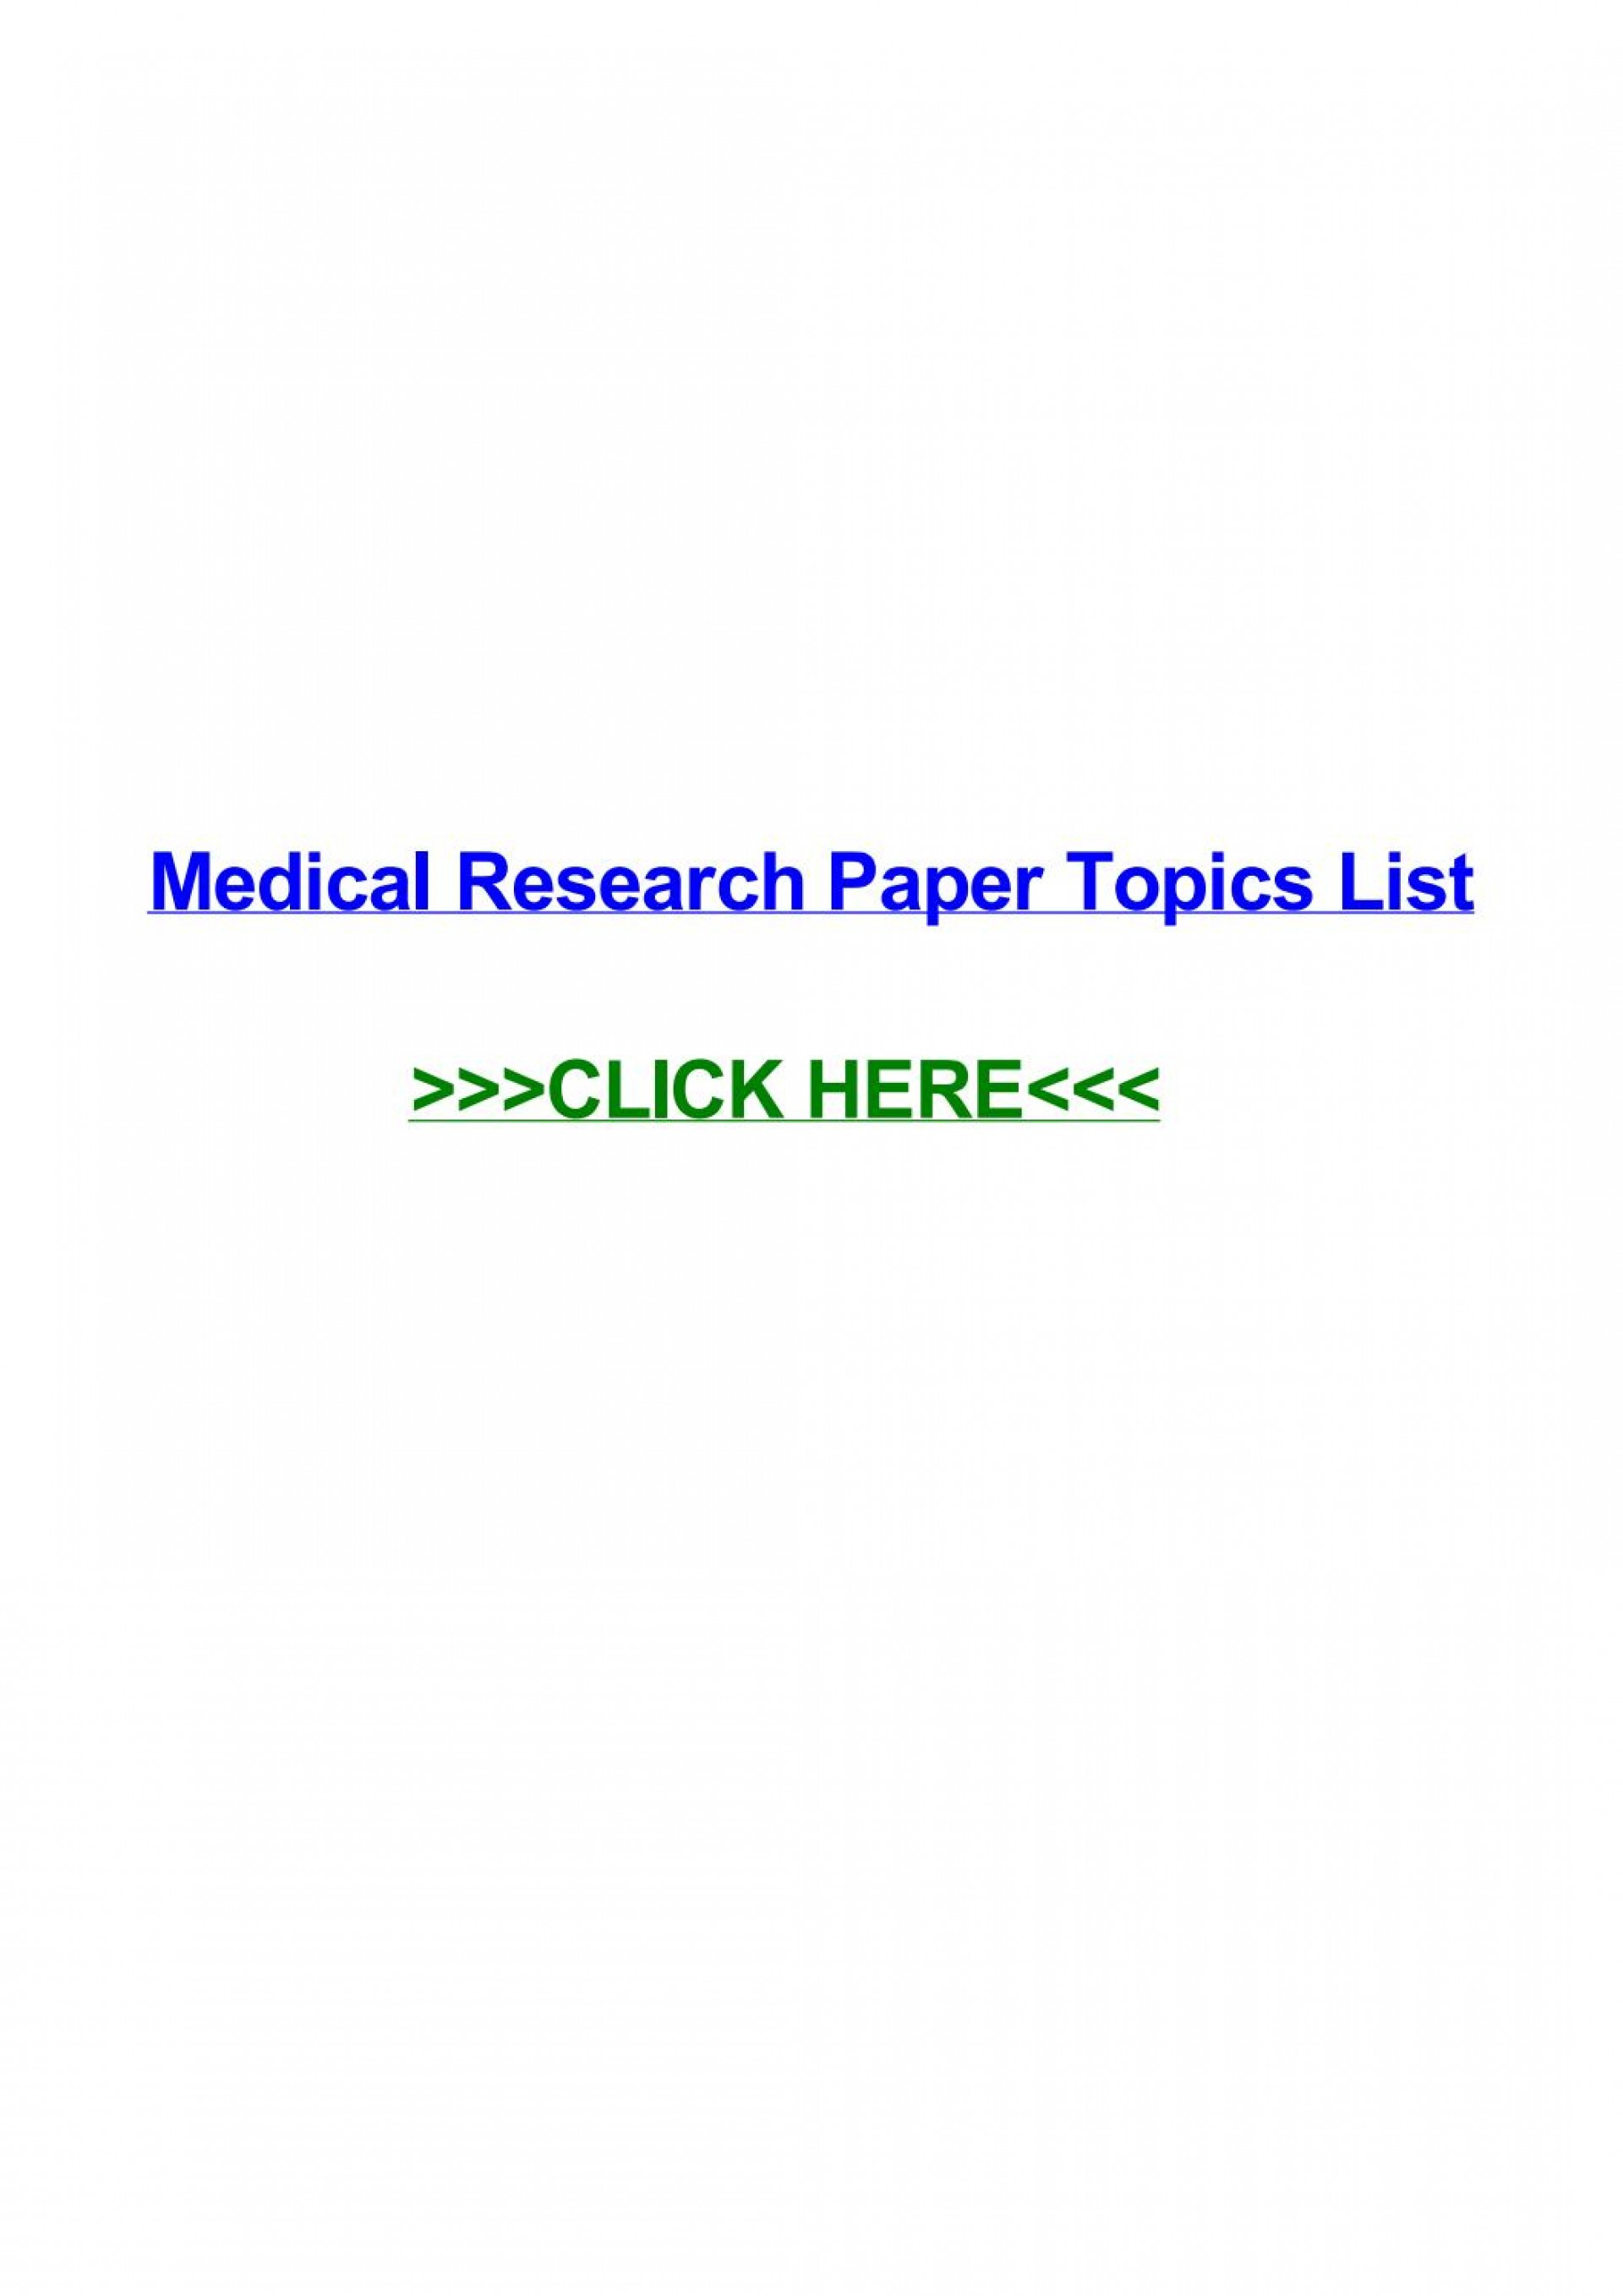 009 Research Paper Topics Medical Page 1 Impressive For Technology Students Malpractice 1920